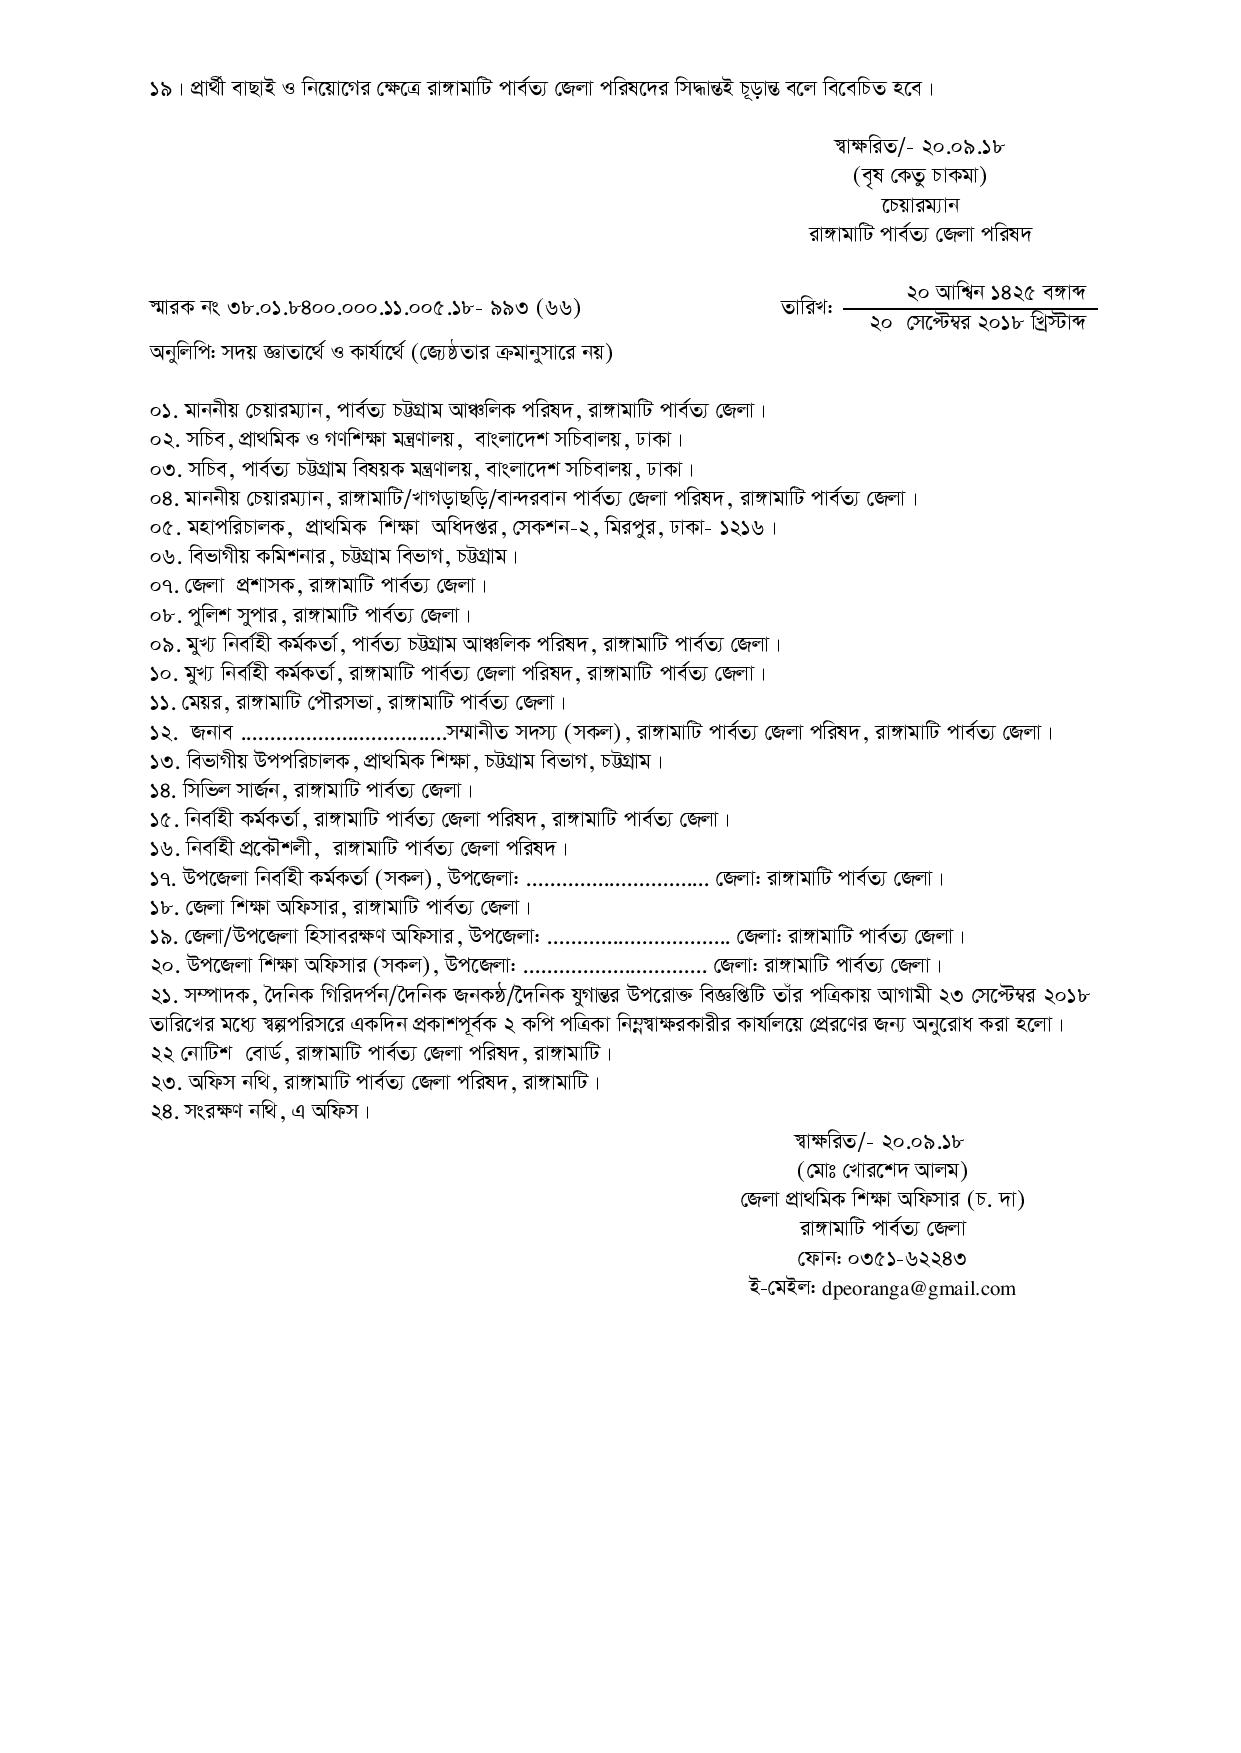 Primary School Teacher Government Job Circular Result 2019 www.dpe.teletalk.com.bd 3